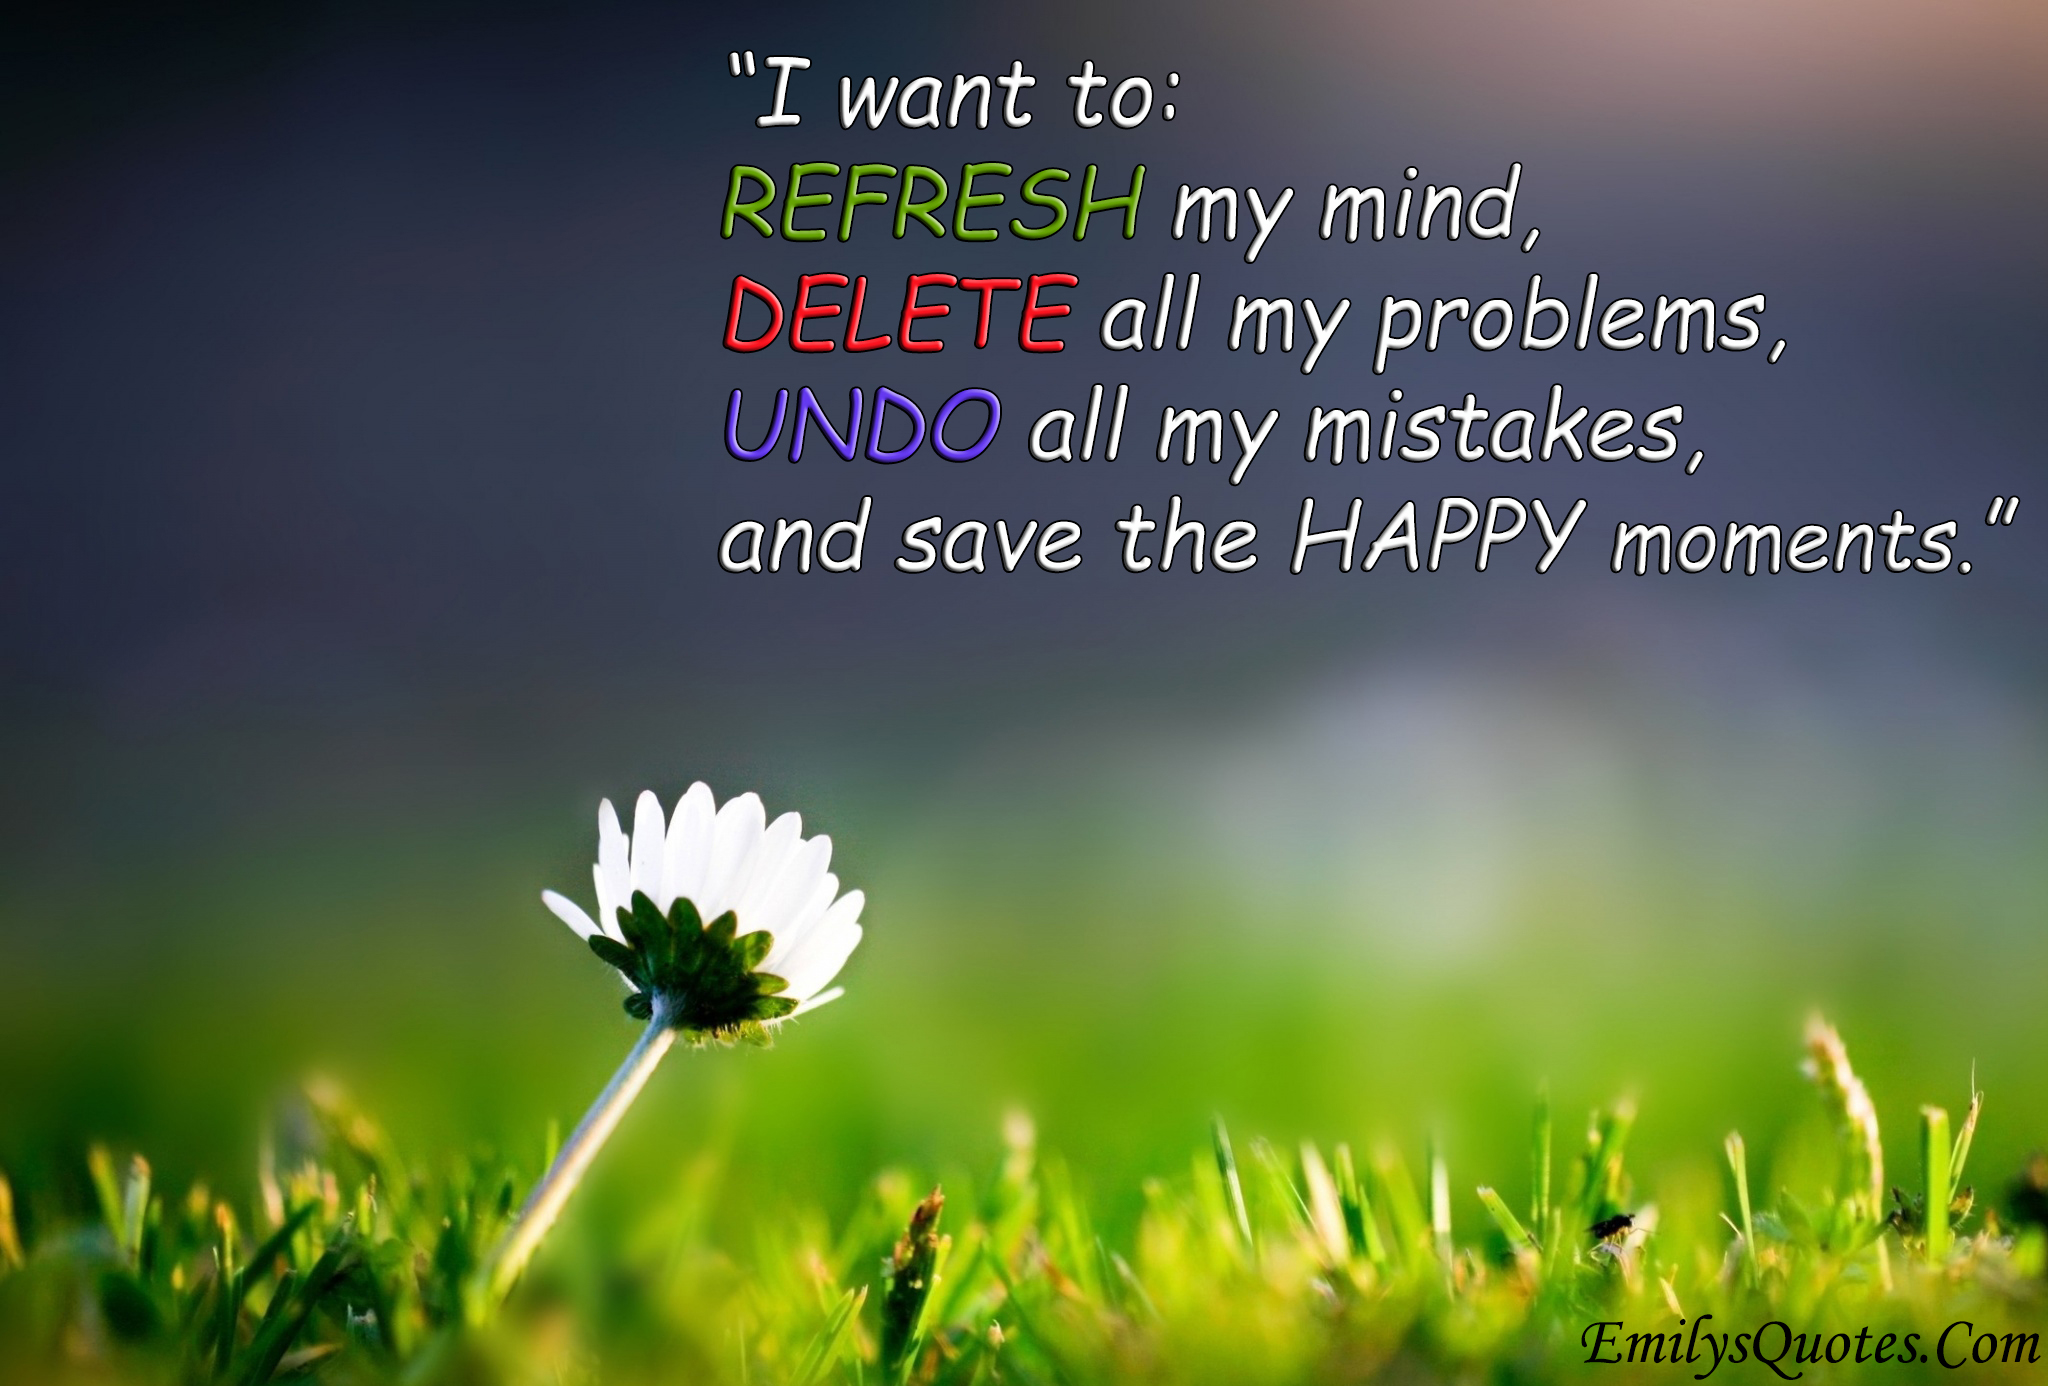 Happy Life Inspirational Quotes I Want To Refresh My Mind Delete All My Problems Undo All My